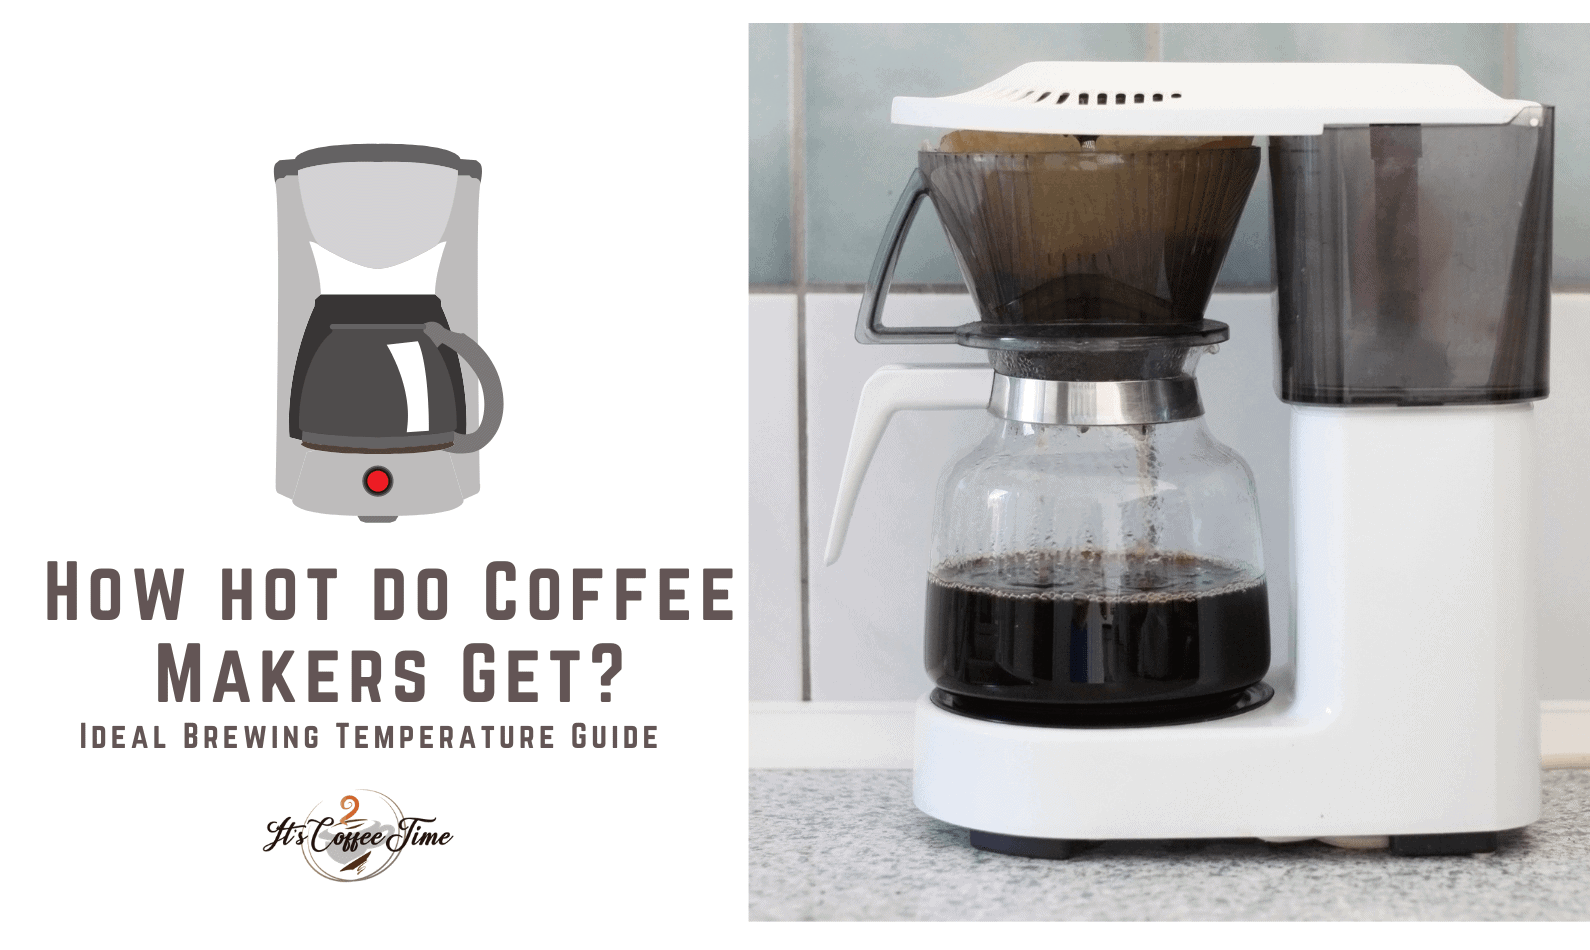 How hot do Coffee Makers Get